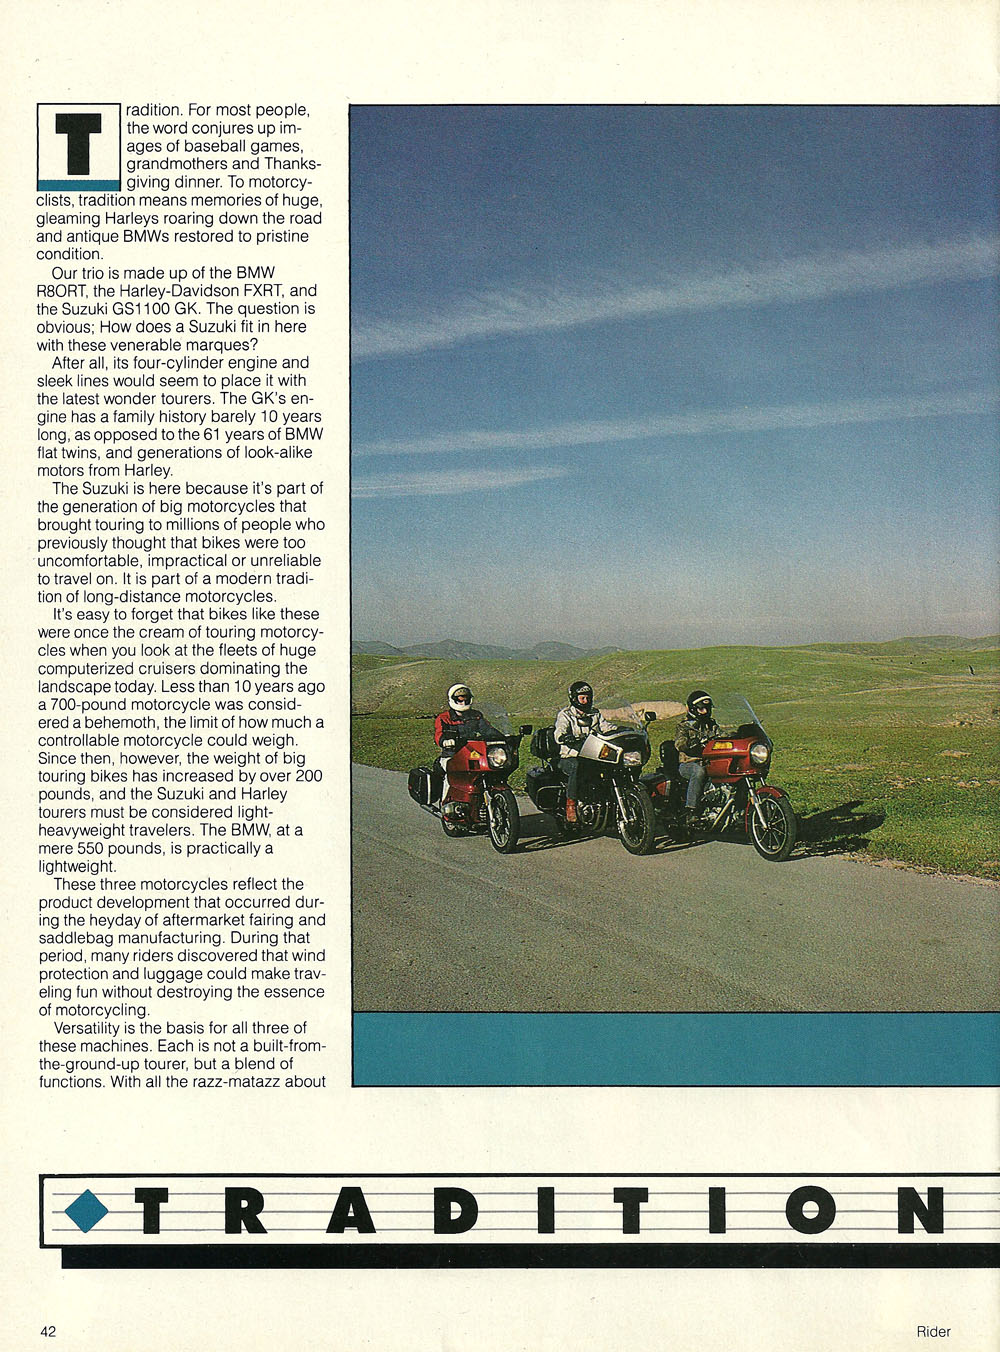 1984 bmw r80rt vs harley fxrt vs suzuki gs1100 road test 01.jpg